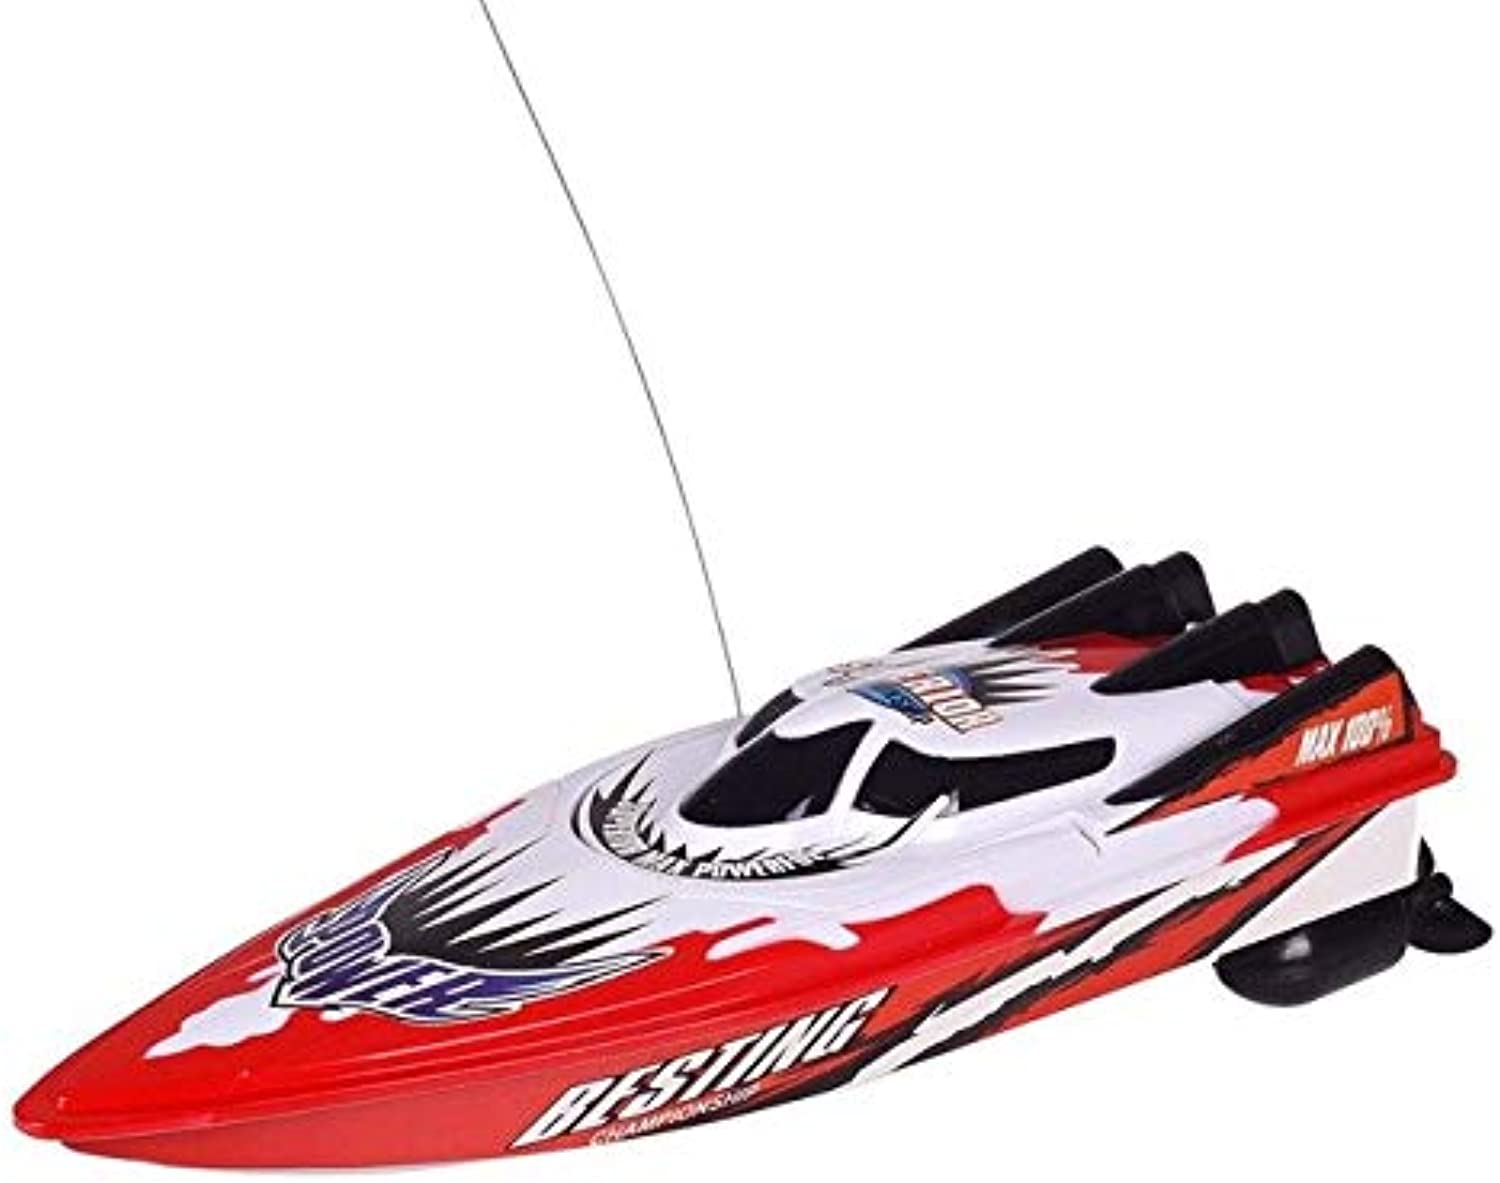 LySanSan  New Radio Remote Control Dual Motor Speed Boat RC Racing Boat HighSpeed Strong Power System Fluid Type Design